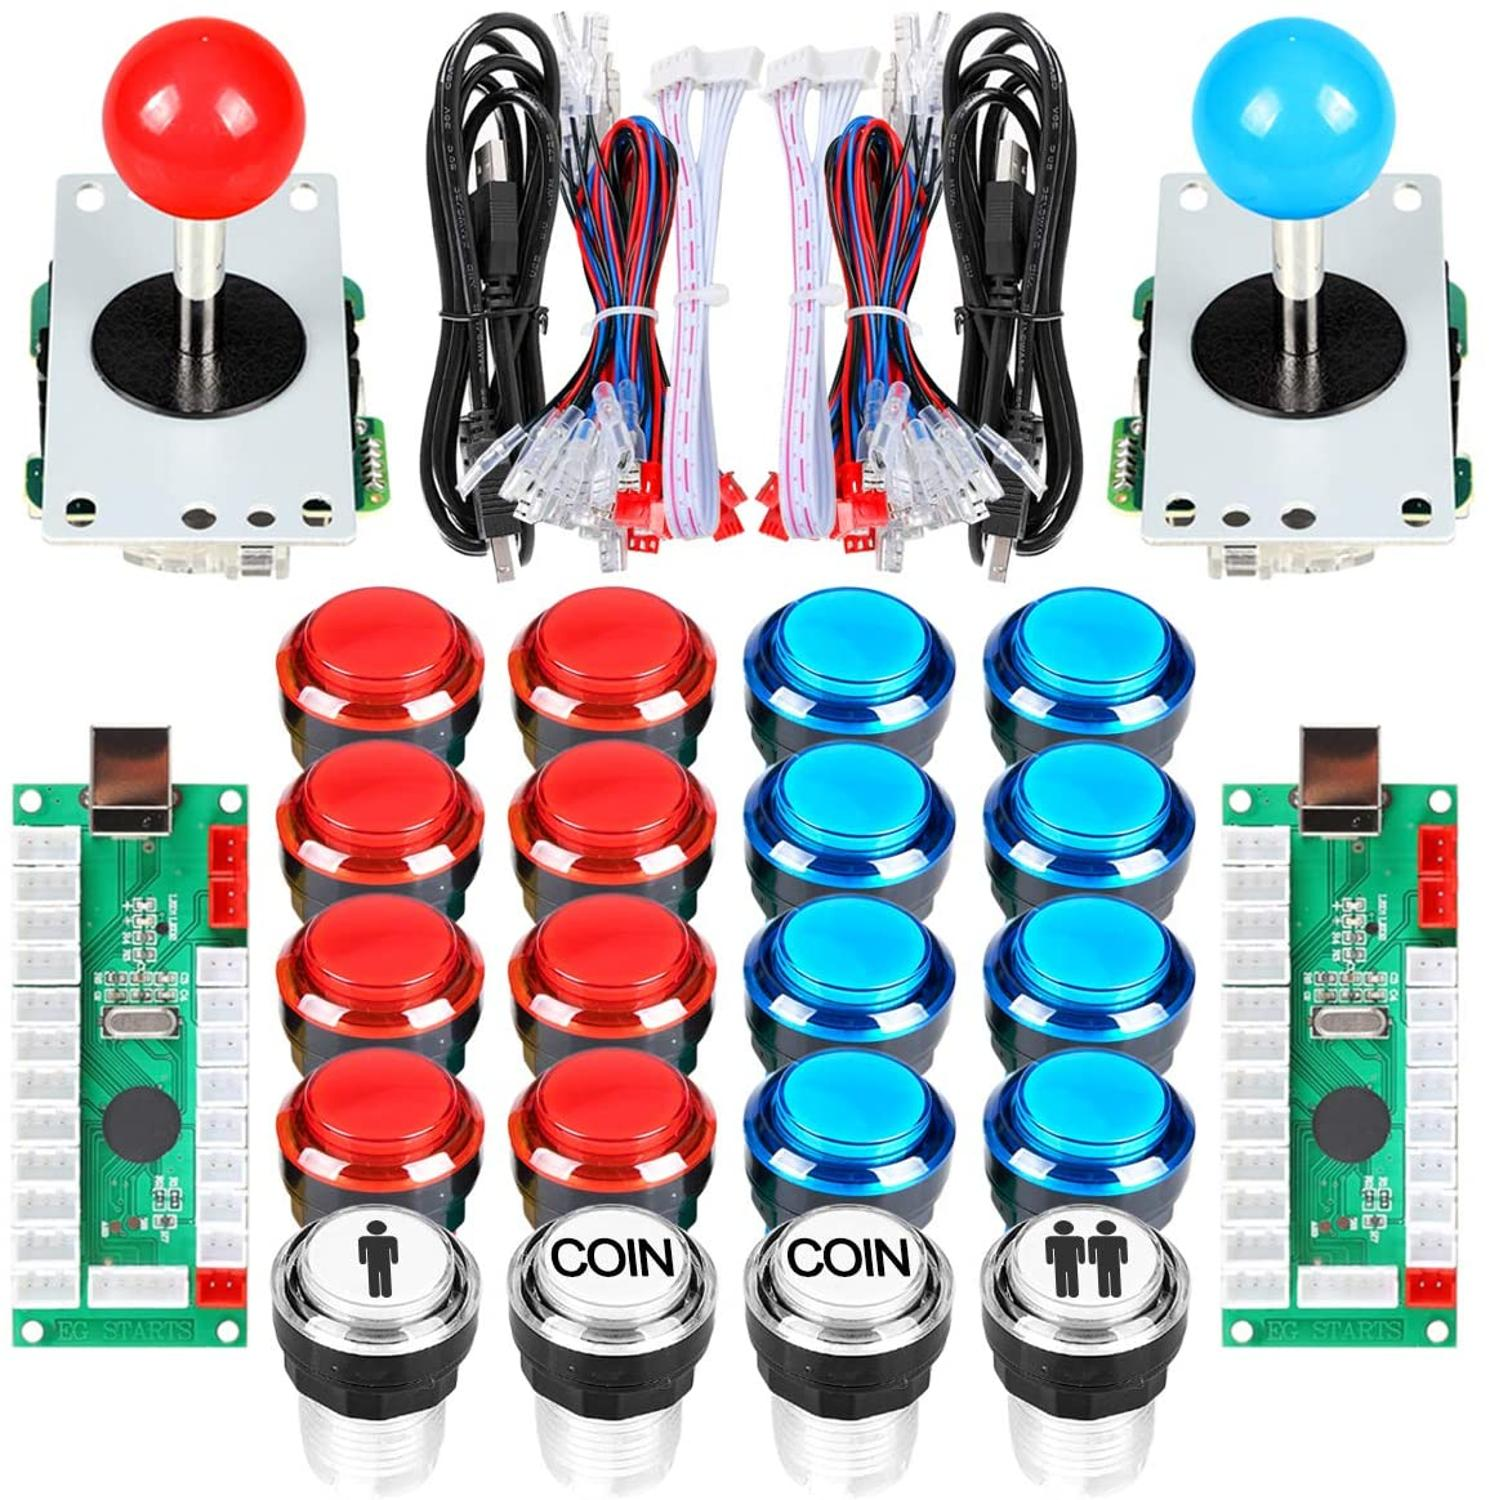 Arcade DIY Kit Part 2x 8 Way Joystick + 16x LED Illuminated Push Buttons + 2 Player + Coin for Raspberry Pi 3B Model Project DIY